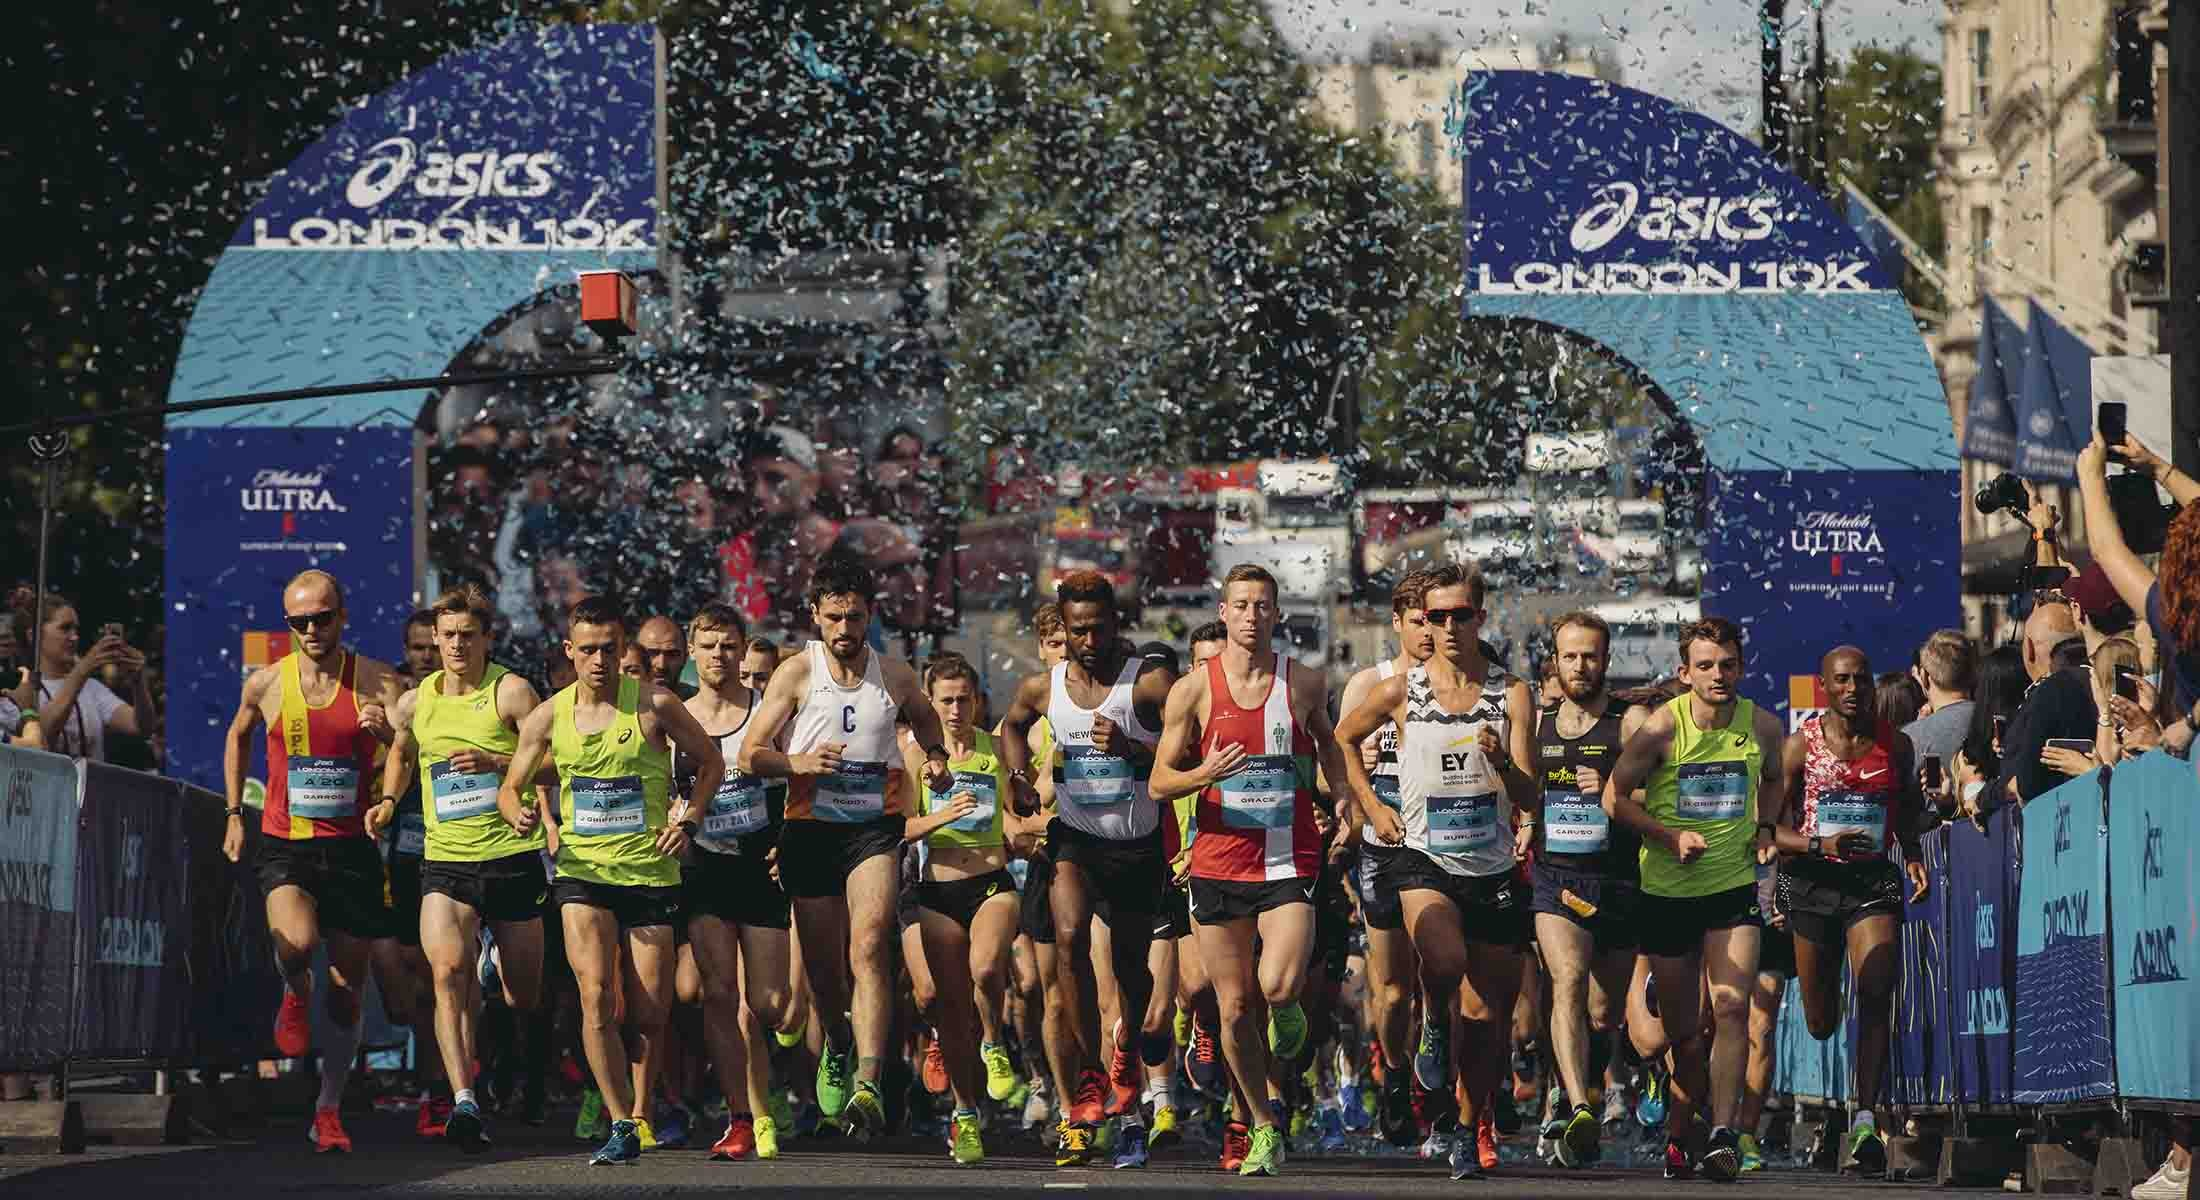 New year, new challenge? Run the Asics London 10km for MiSP in 2020!